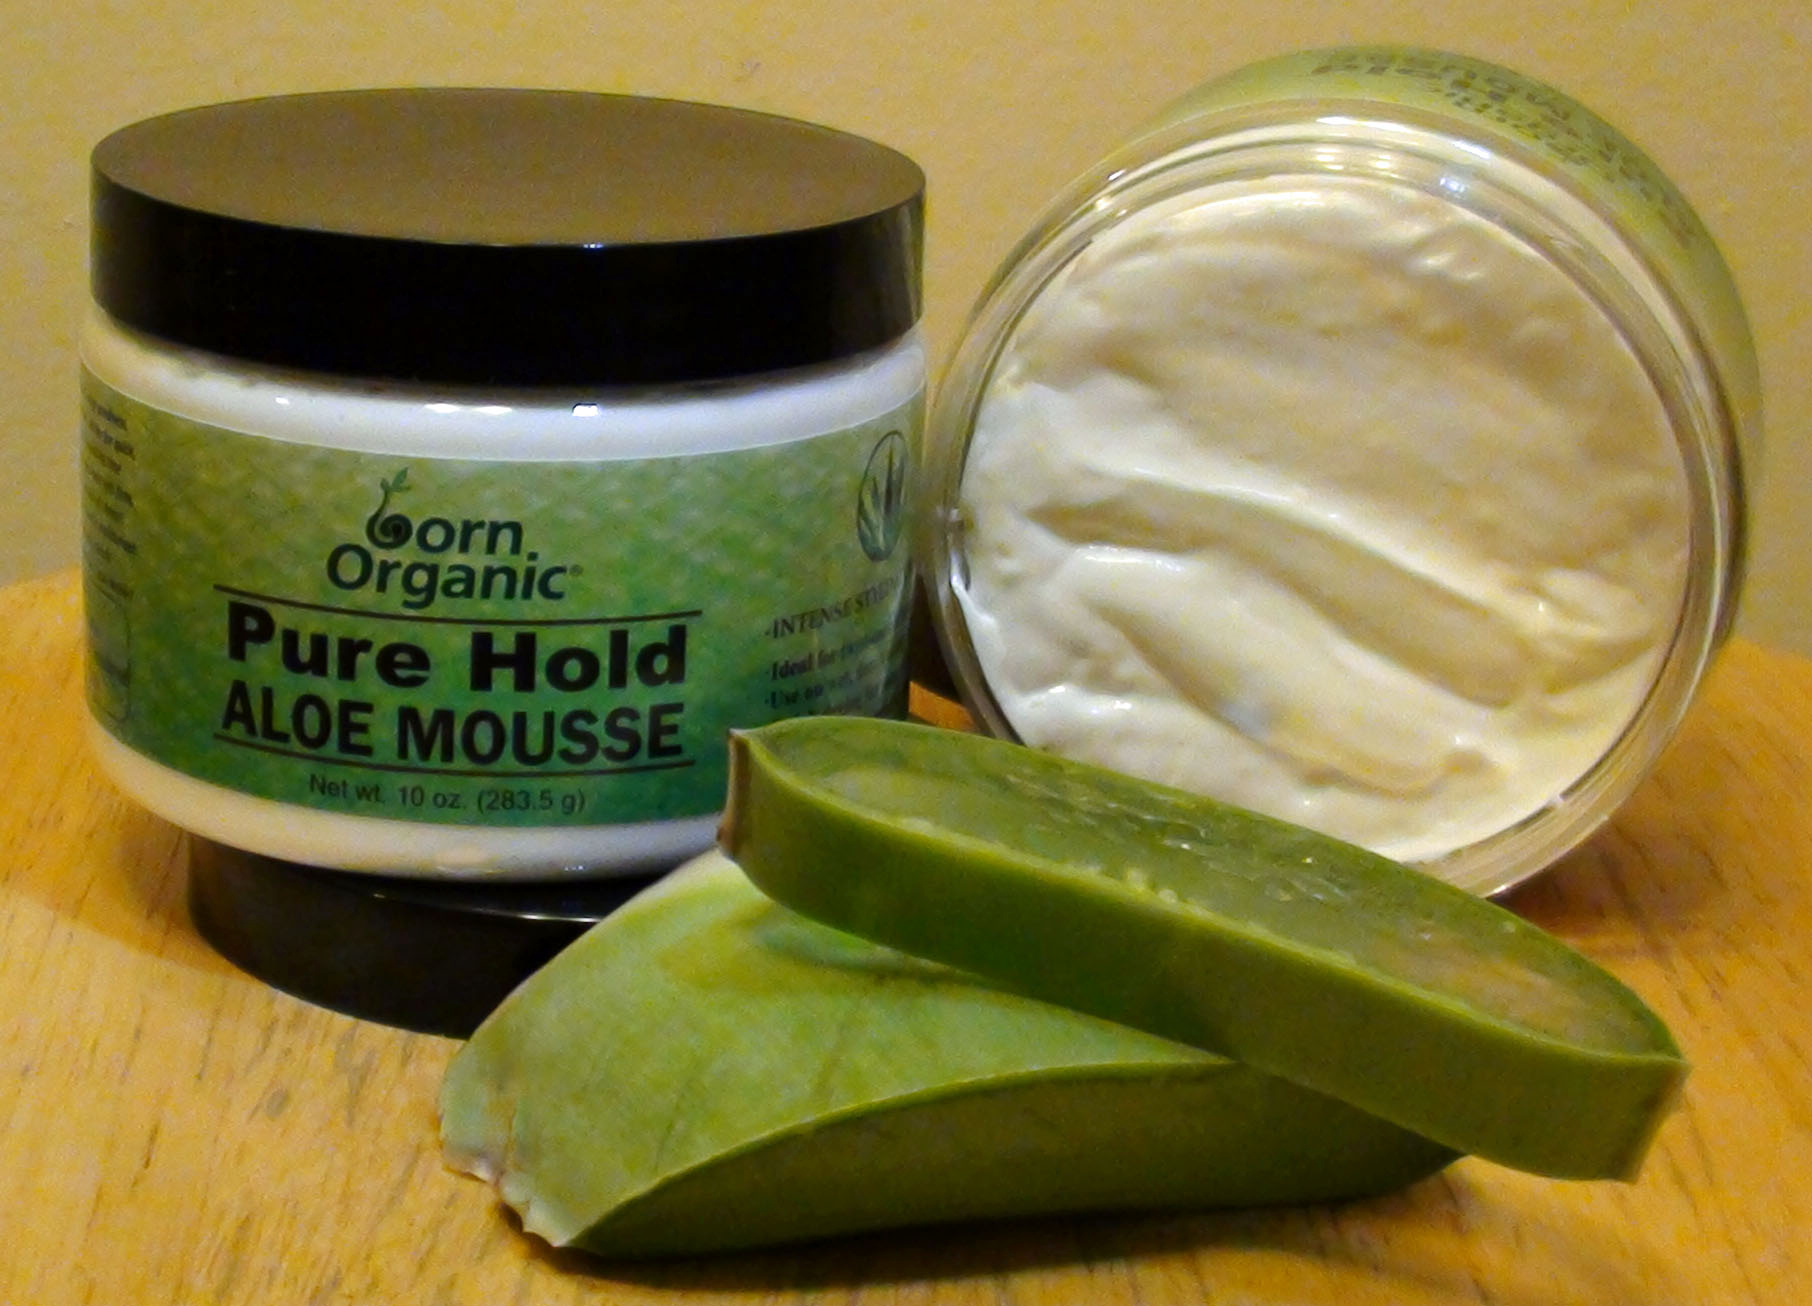 Pure Hold Aloe Mousse